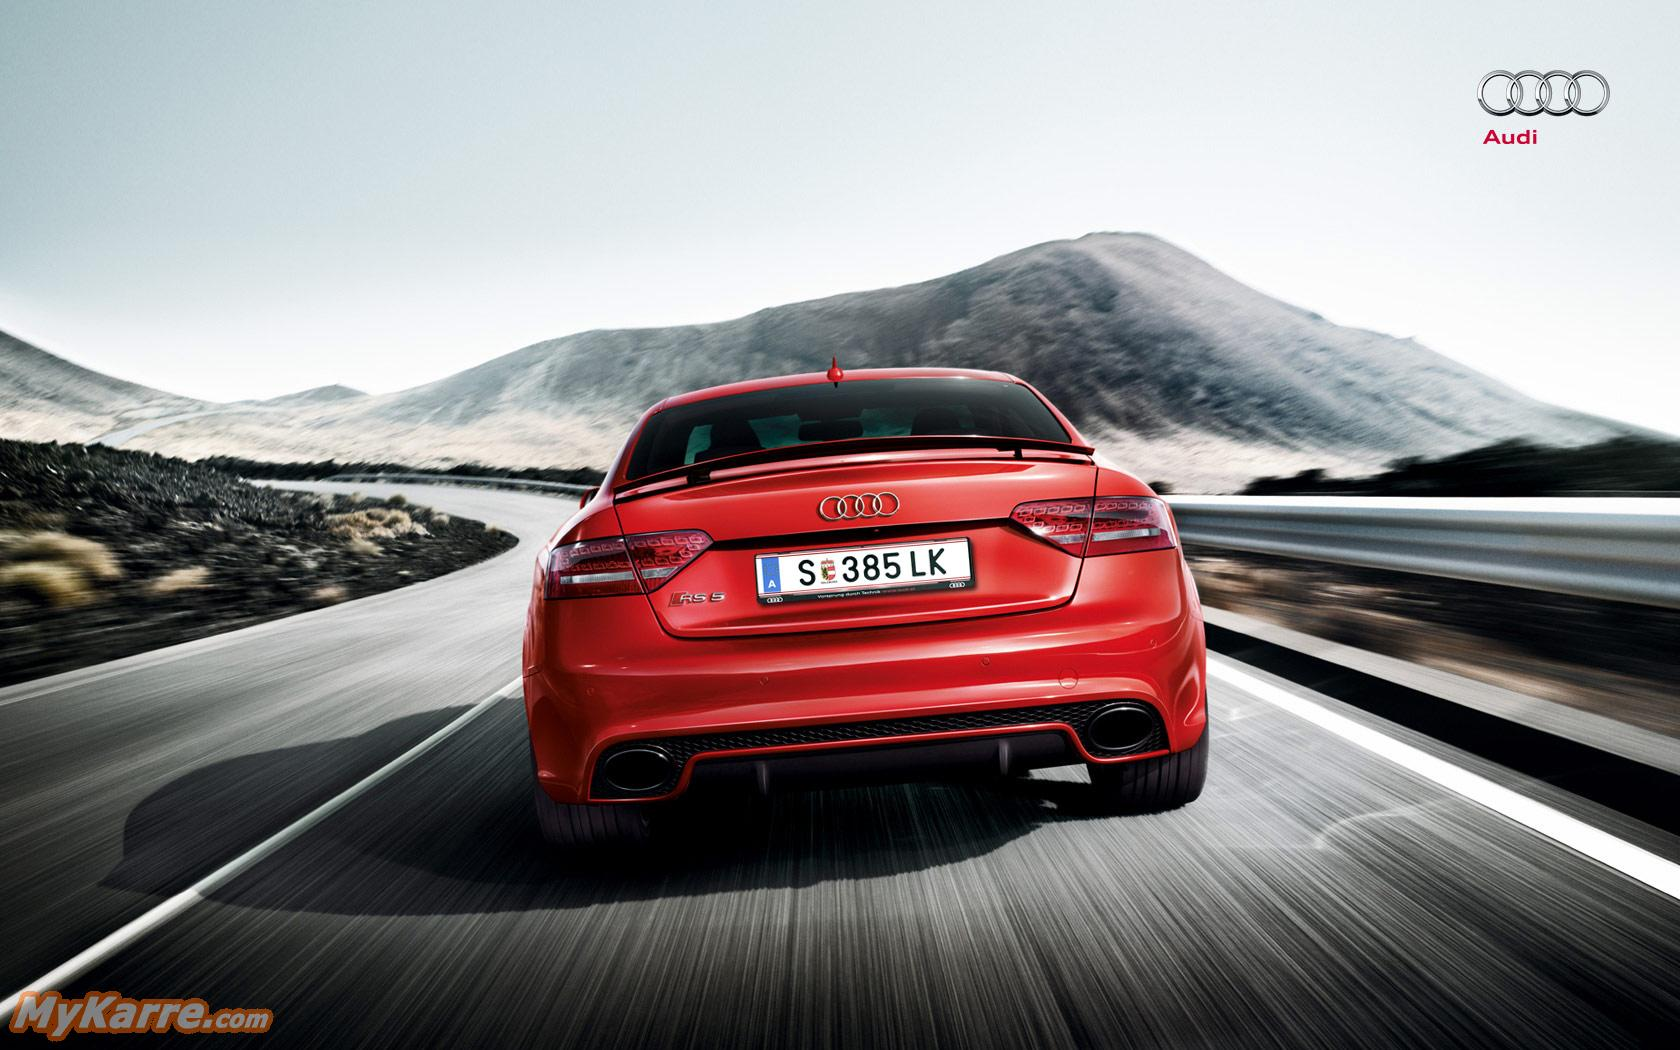 Audi RS5 Wallpaper Heckansicht